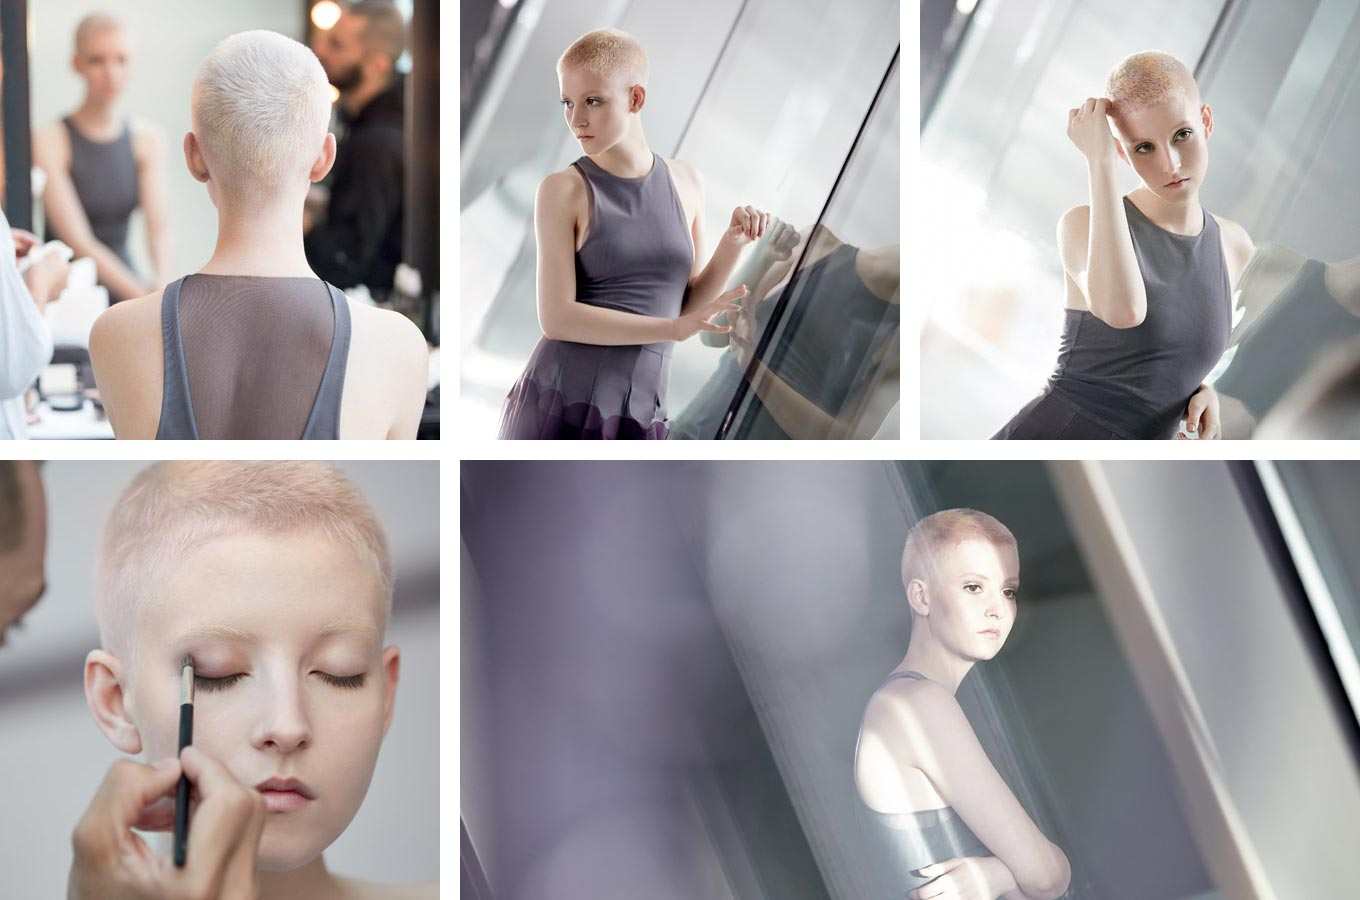 Wella účesy jaro/léto 2015 – extrémně krátký střih a kreativní tónování charakterizují nový blond účes Wella. Účes je z kolekce Wella Professionals Distilled Collection – Spring/Summer 2015.